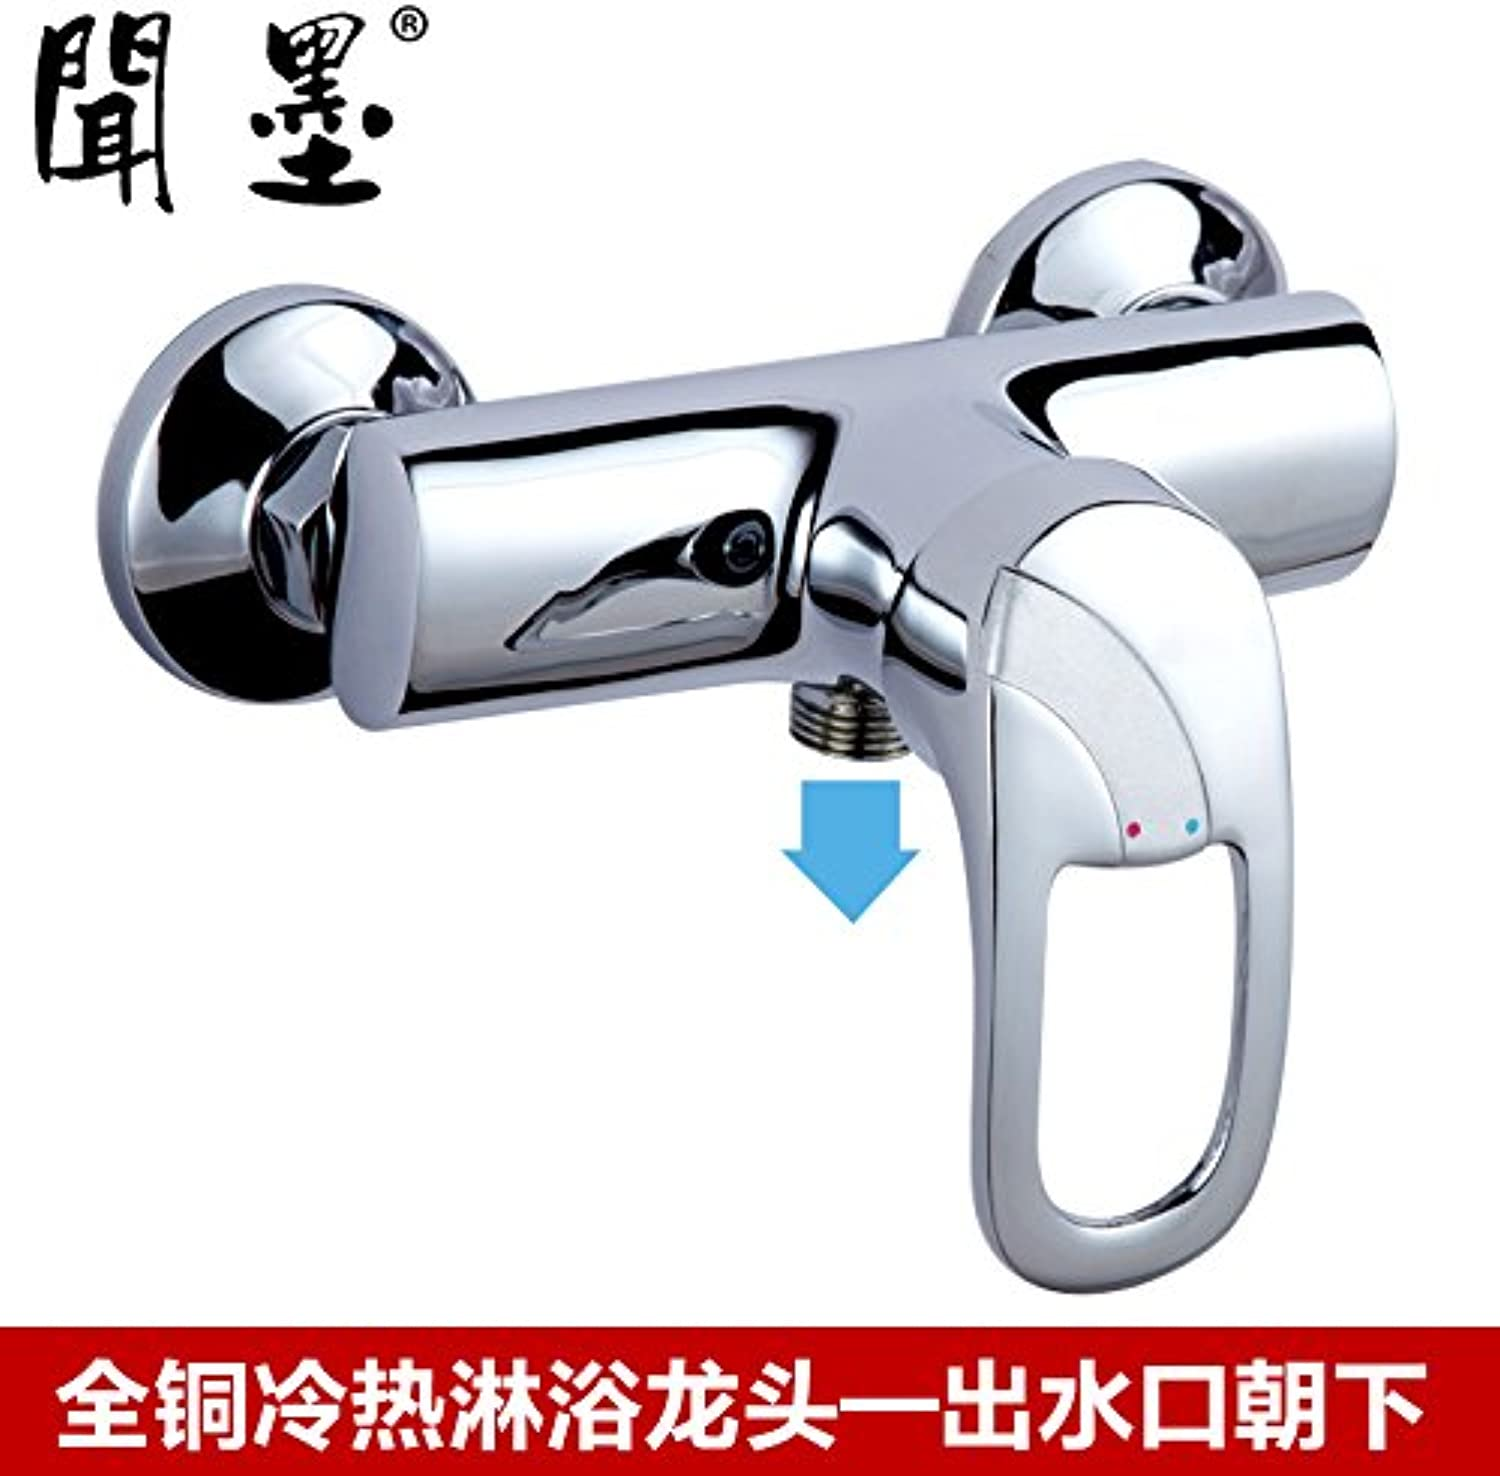 ETERNAL QUALITY Bathroom Sink Basin Tap Brass Mixer Tap Washroom Mixer Faucet Shower Faucet hot and cold shower kit full copper-Water Valve Switch flush bathroom shower b